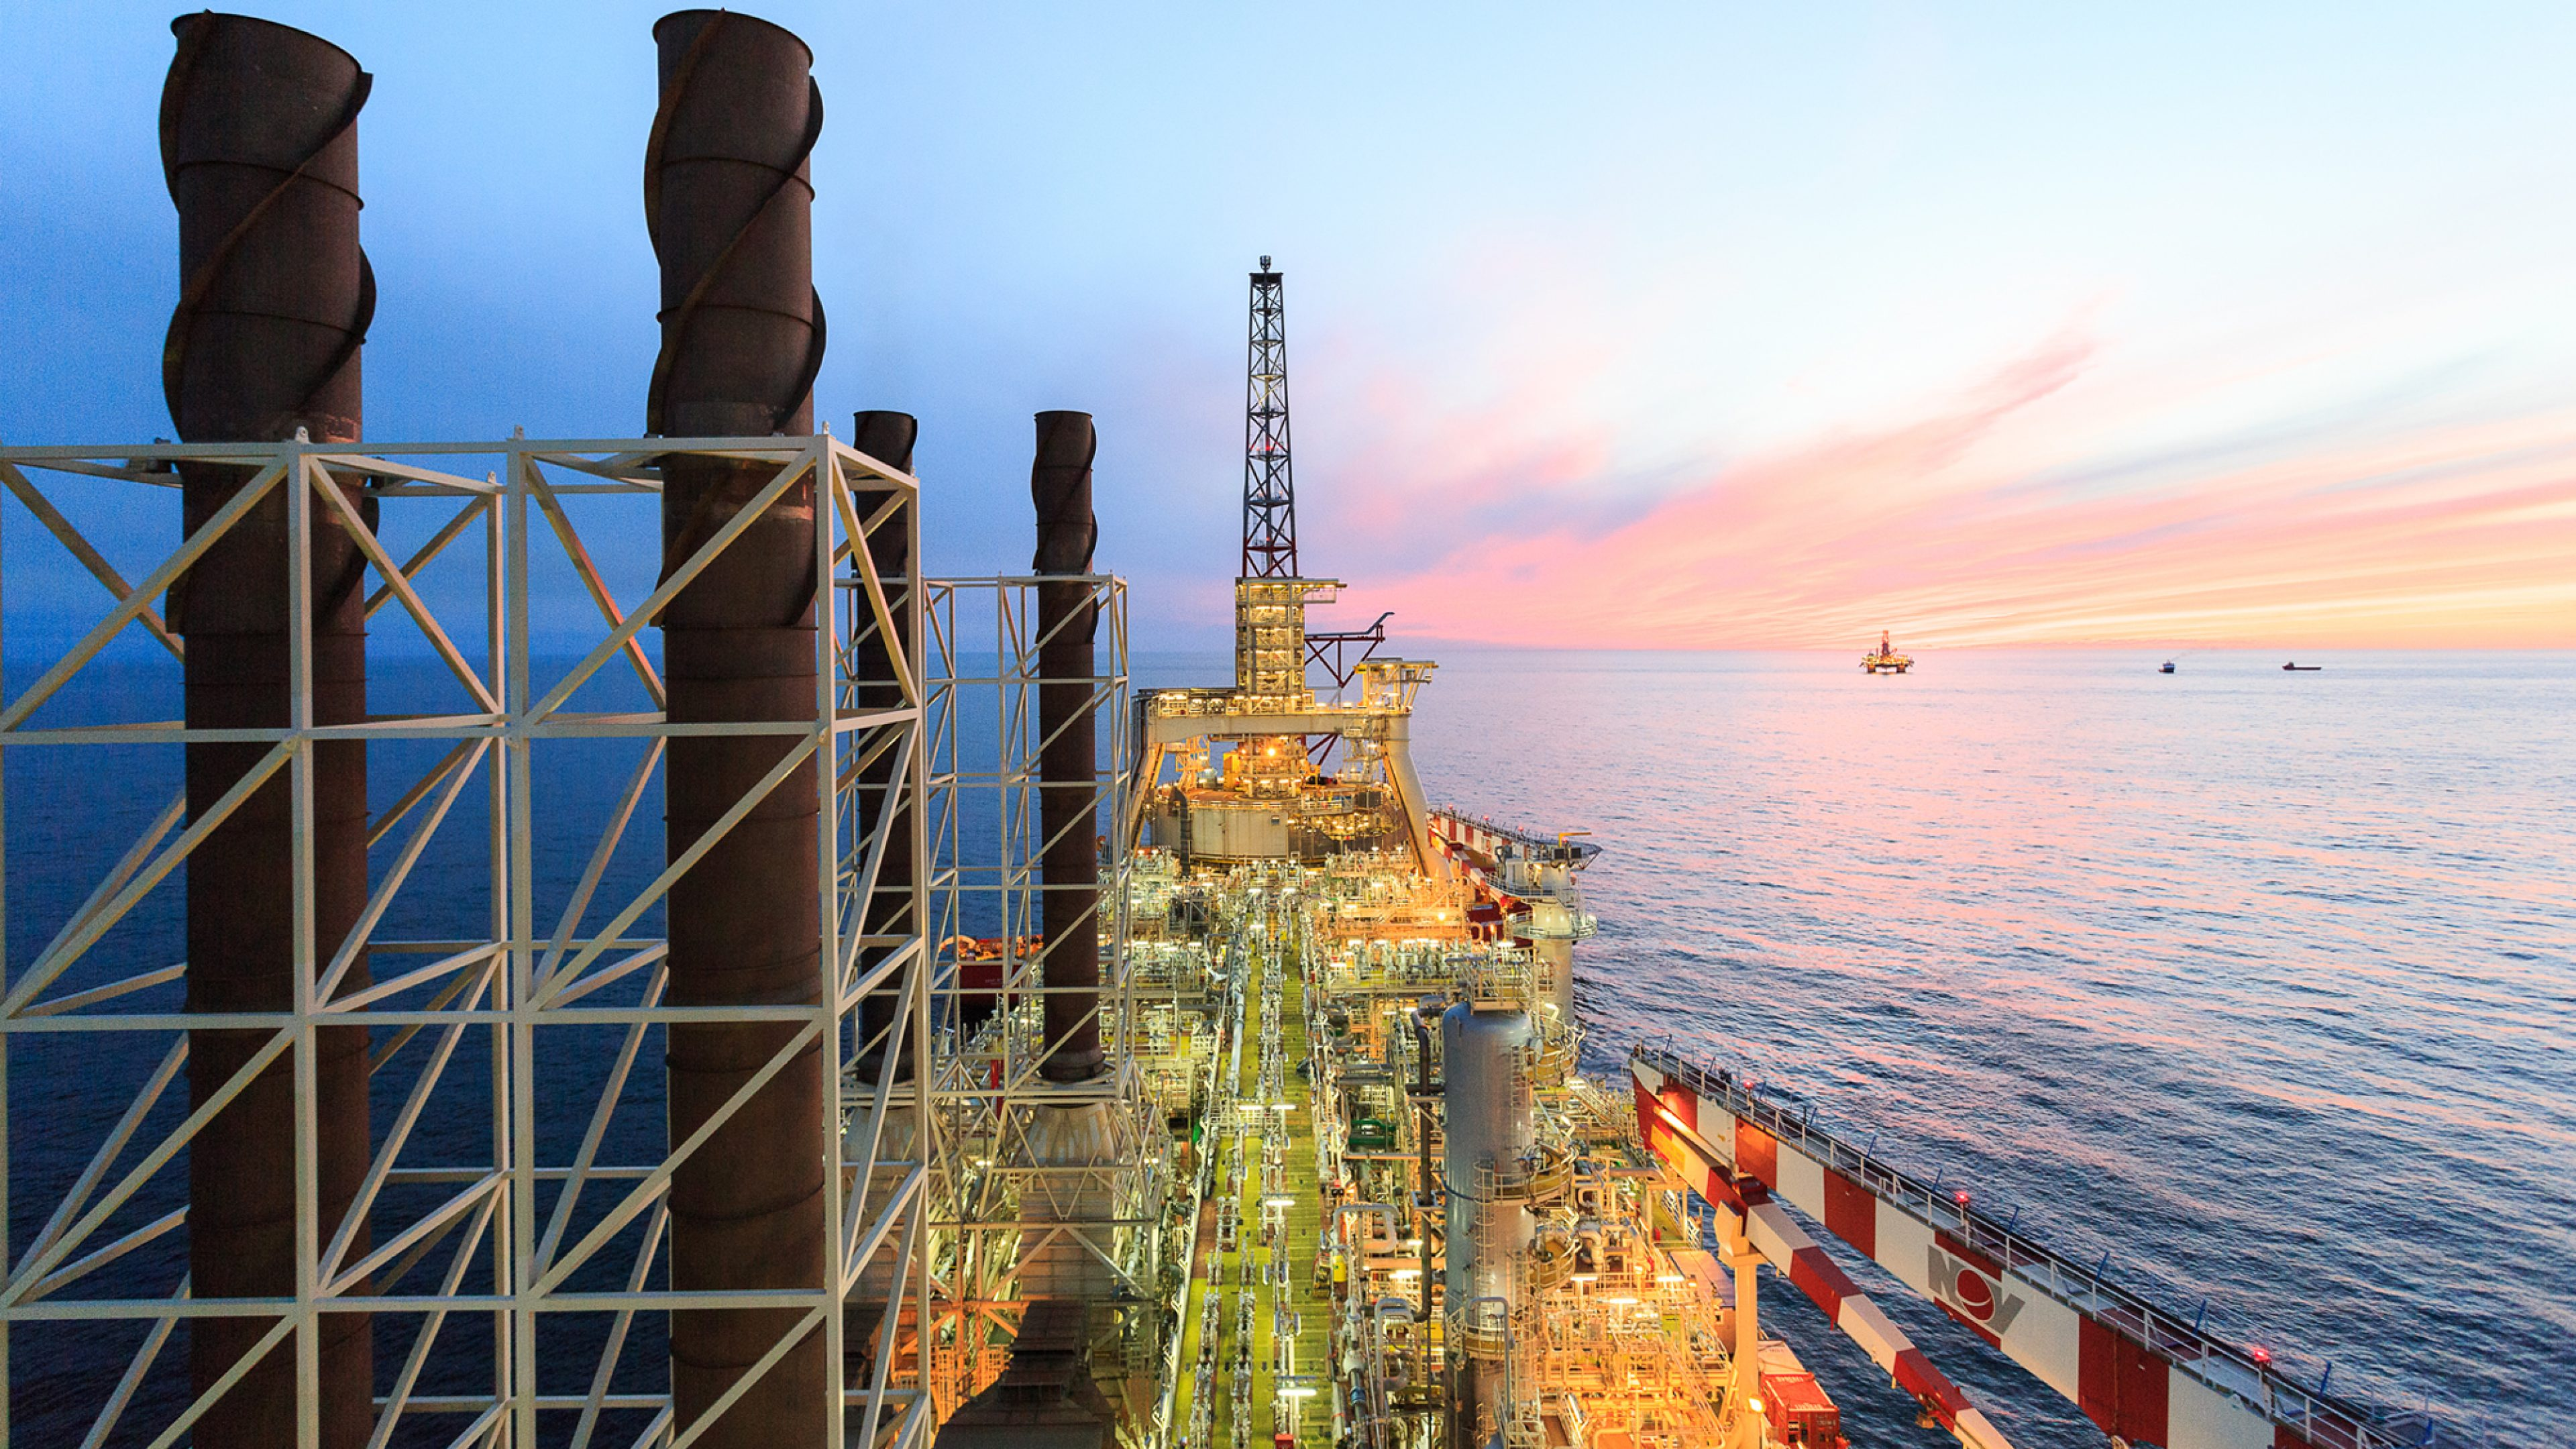 View across the Glen Lyon FPSO in the UK North Sea at dusk